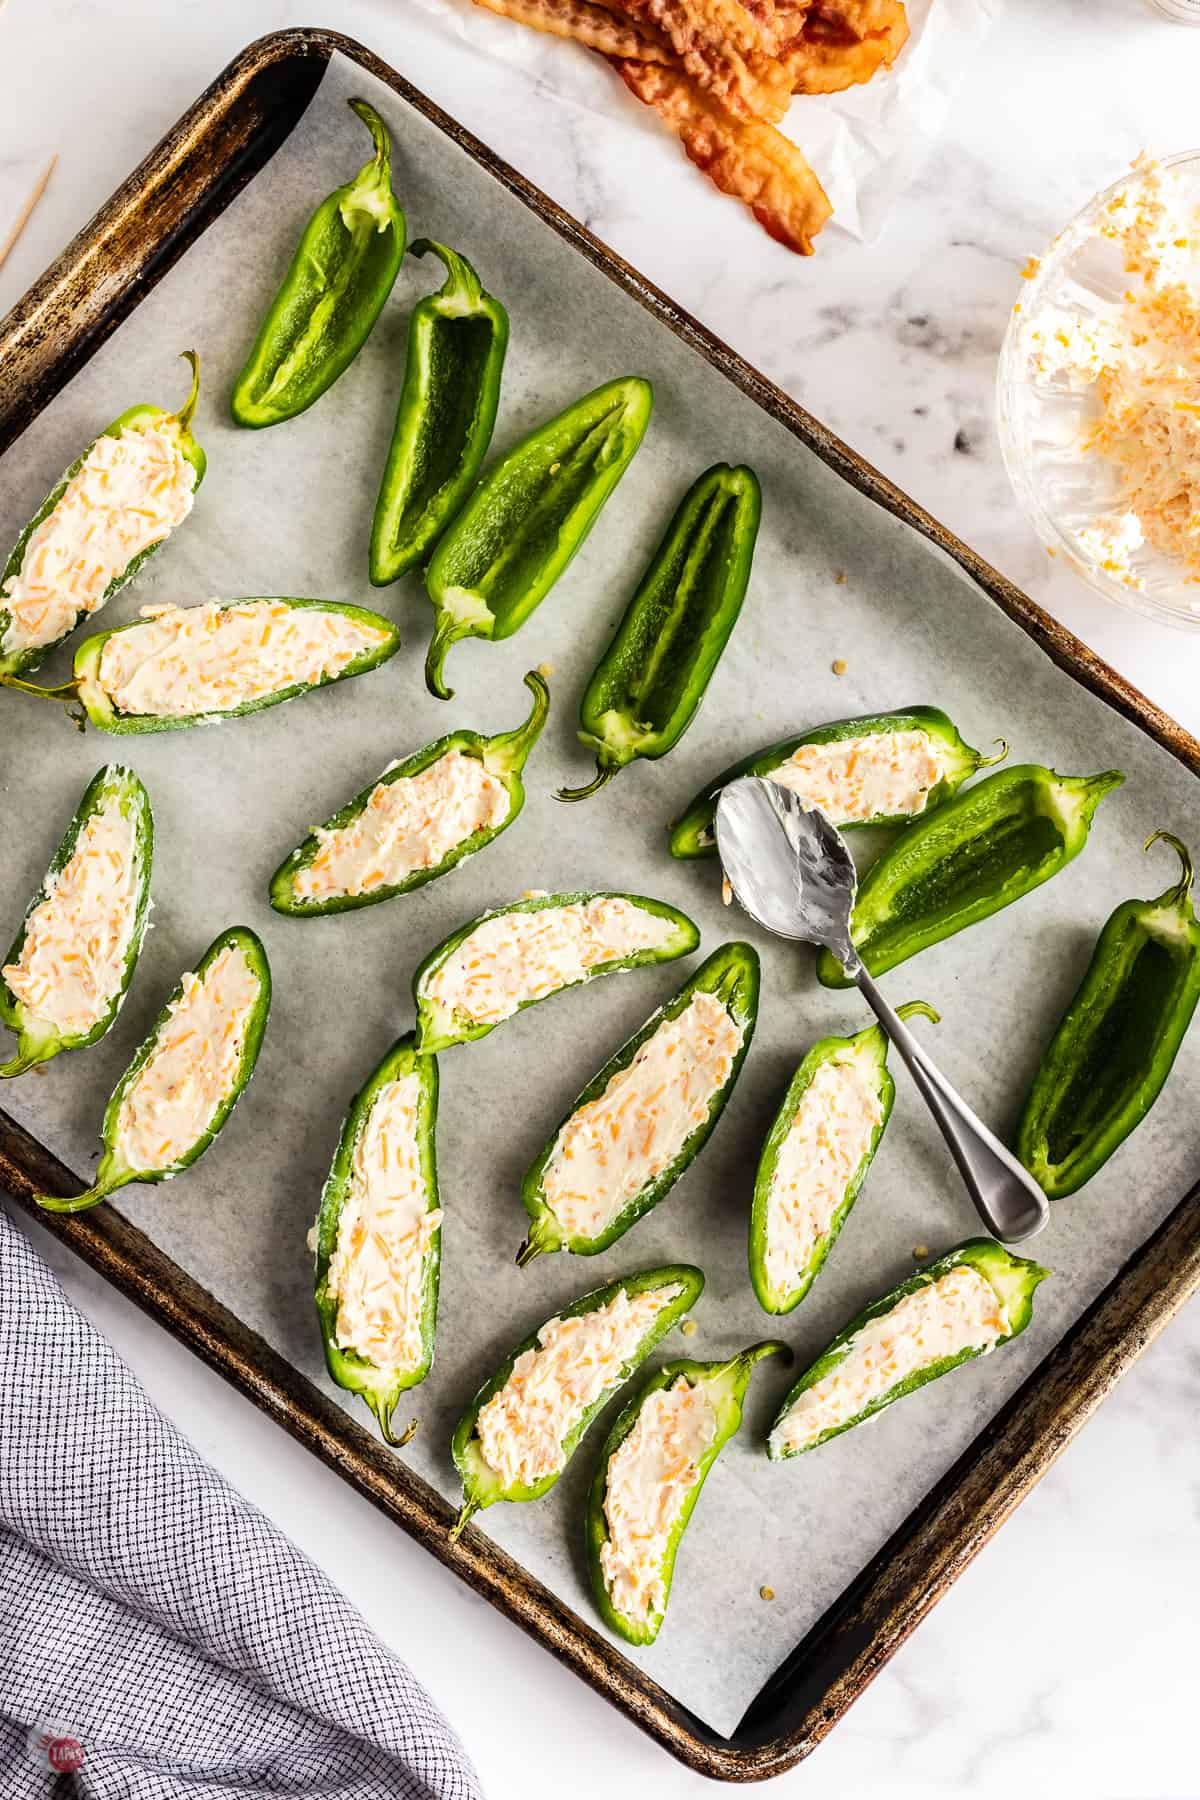 filled jalapeno peppers